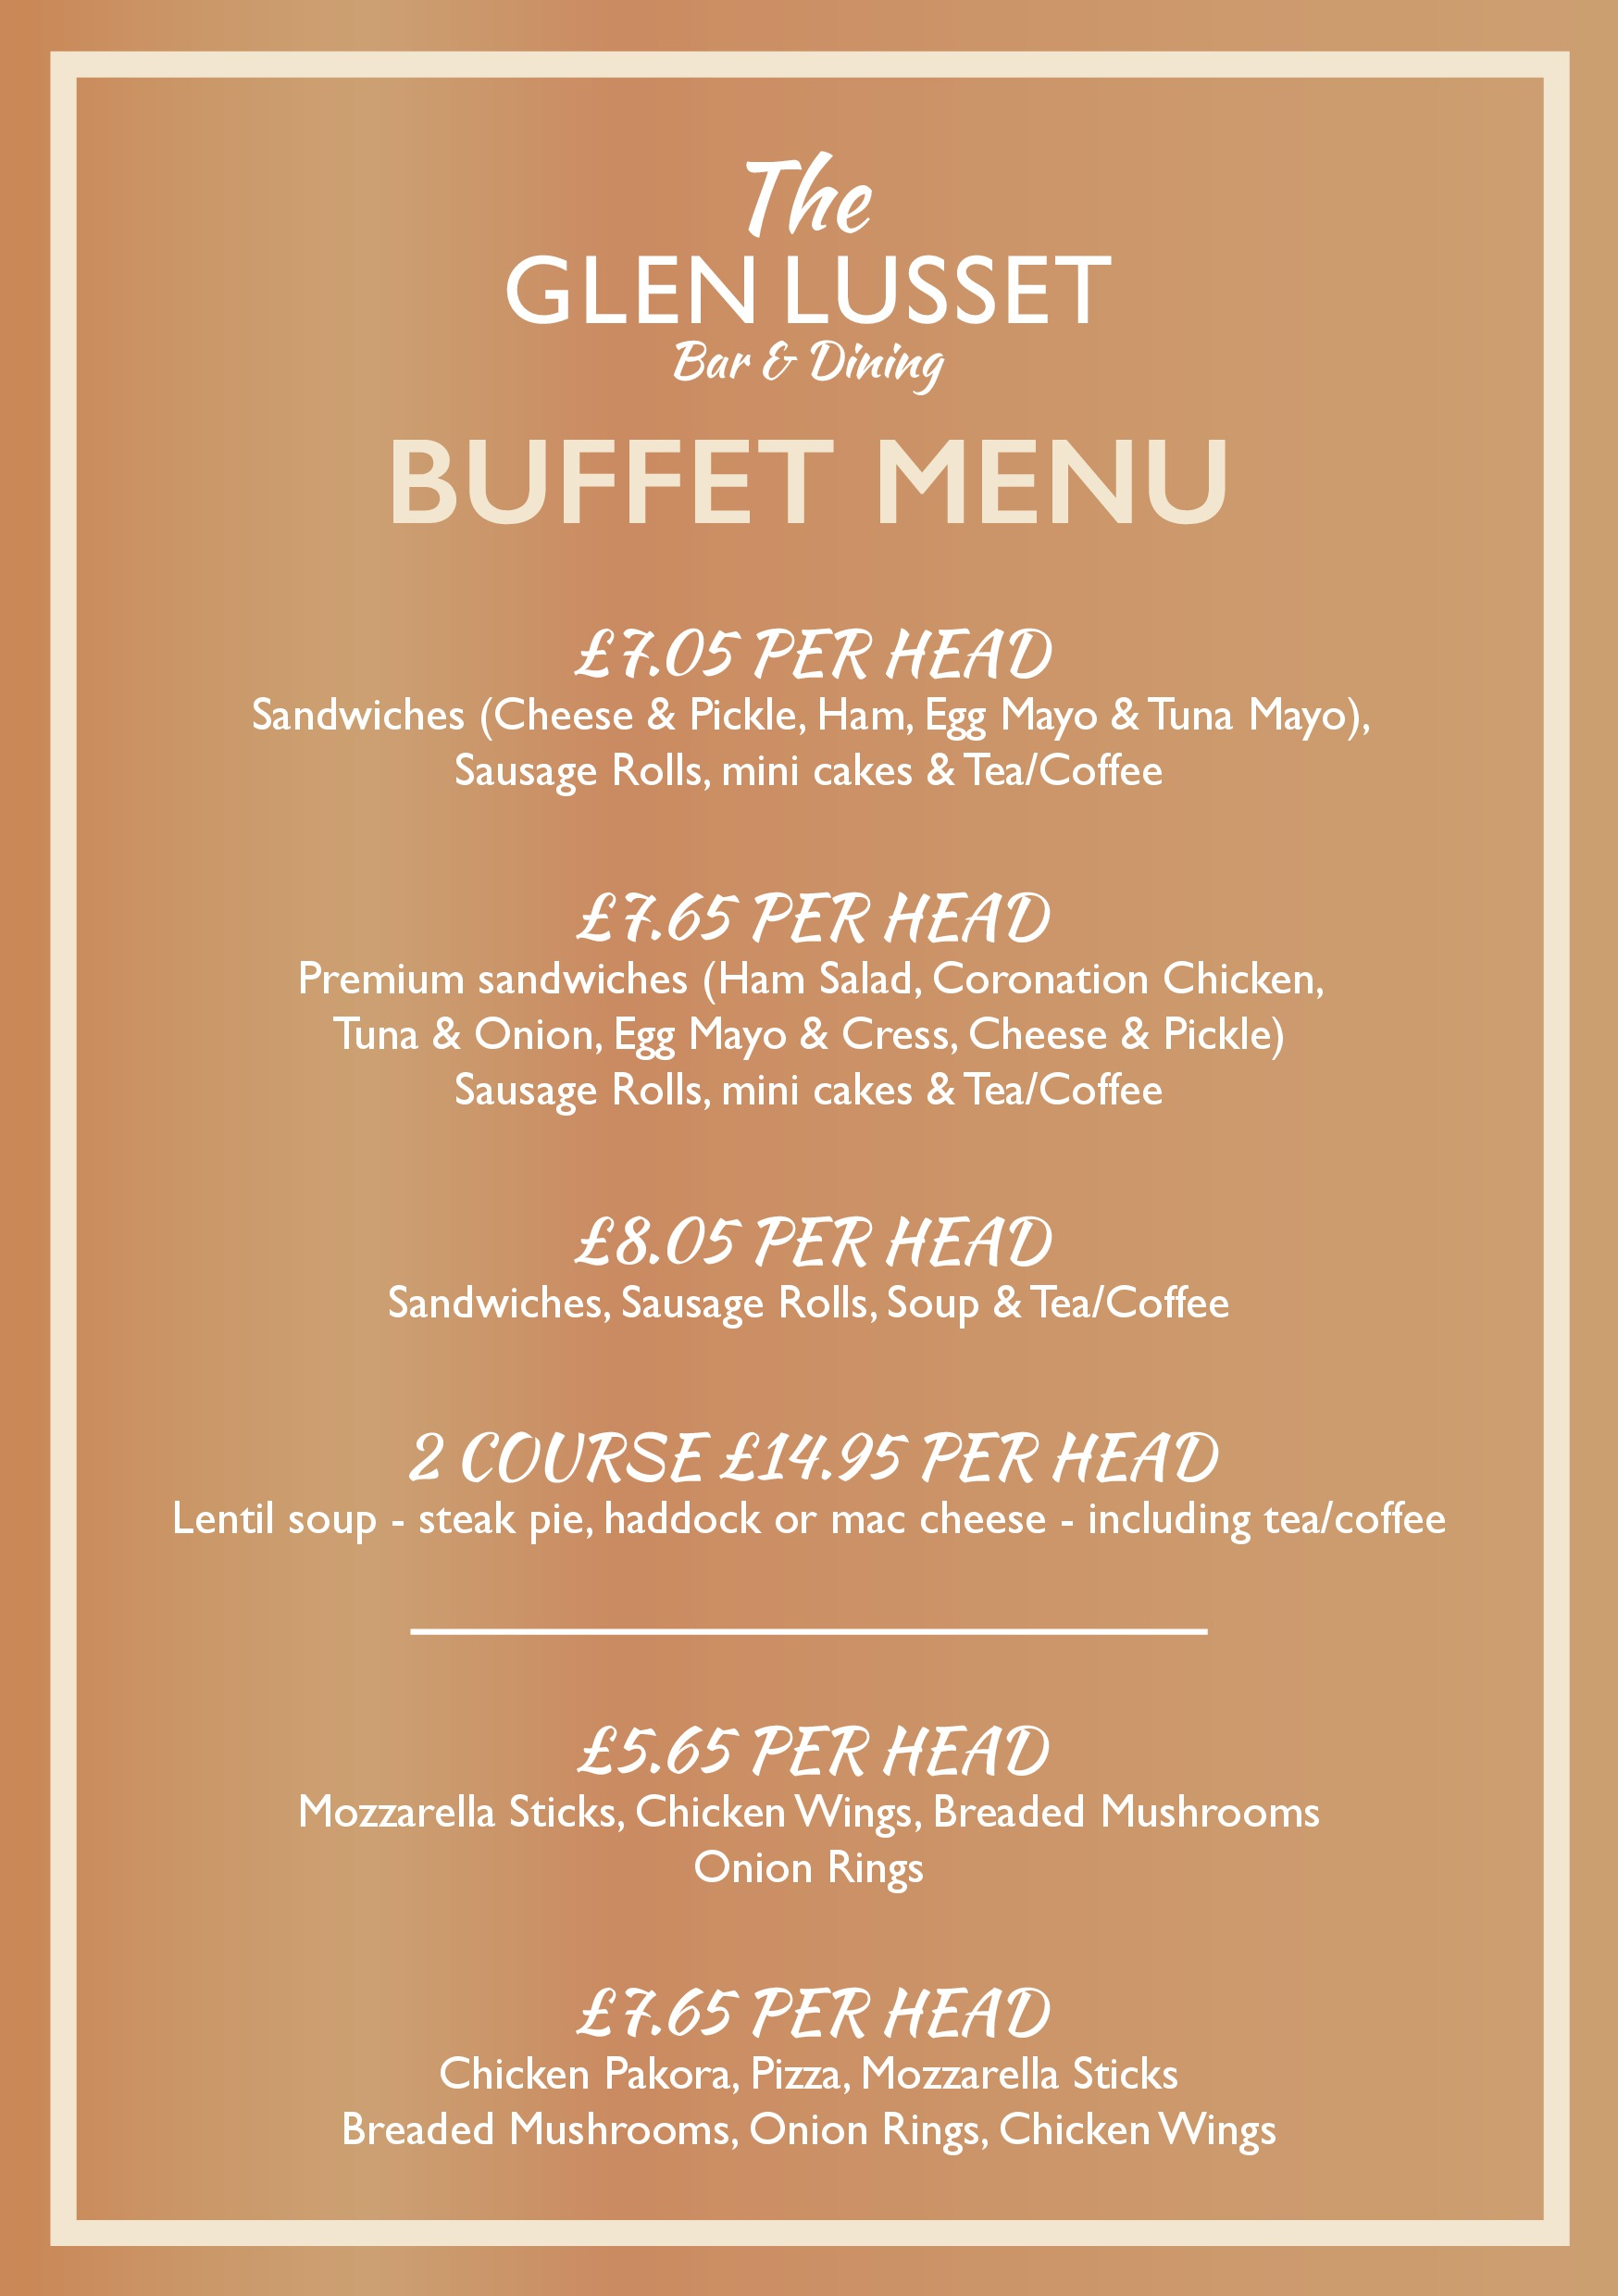 buffet menu family parties weddings funerals anniversaries christenings pub food